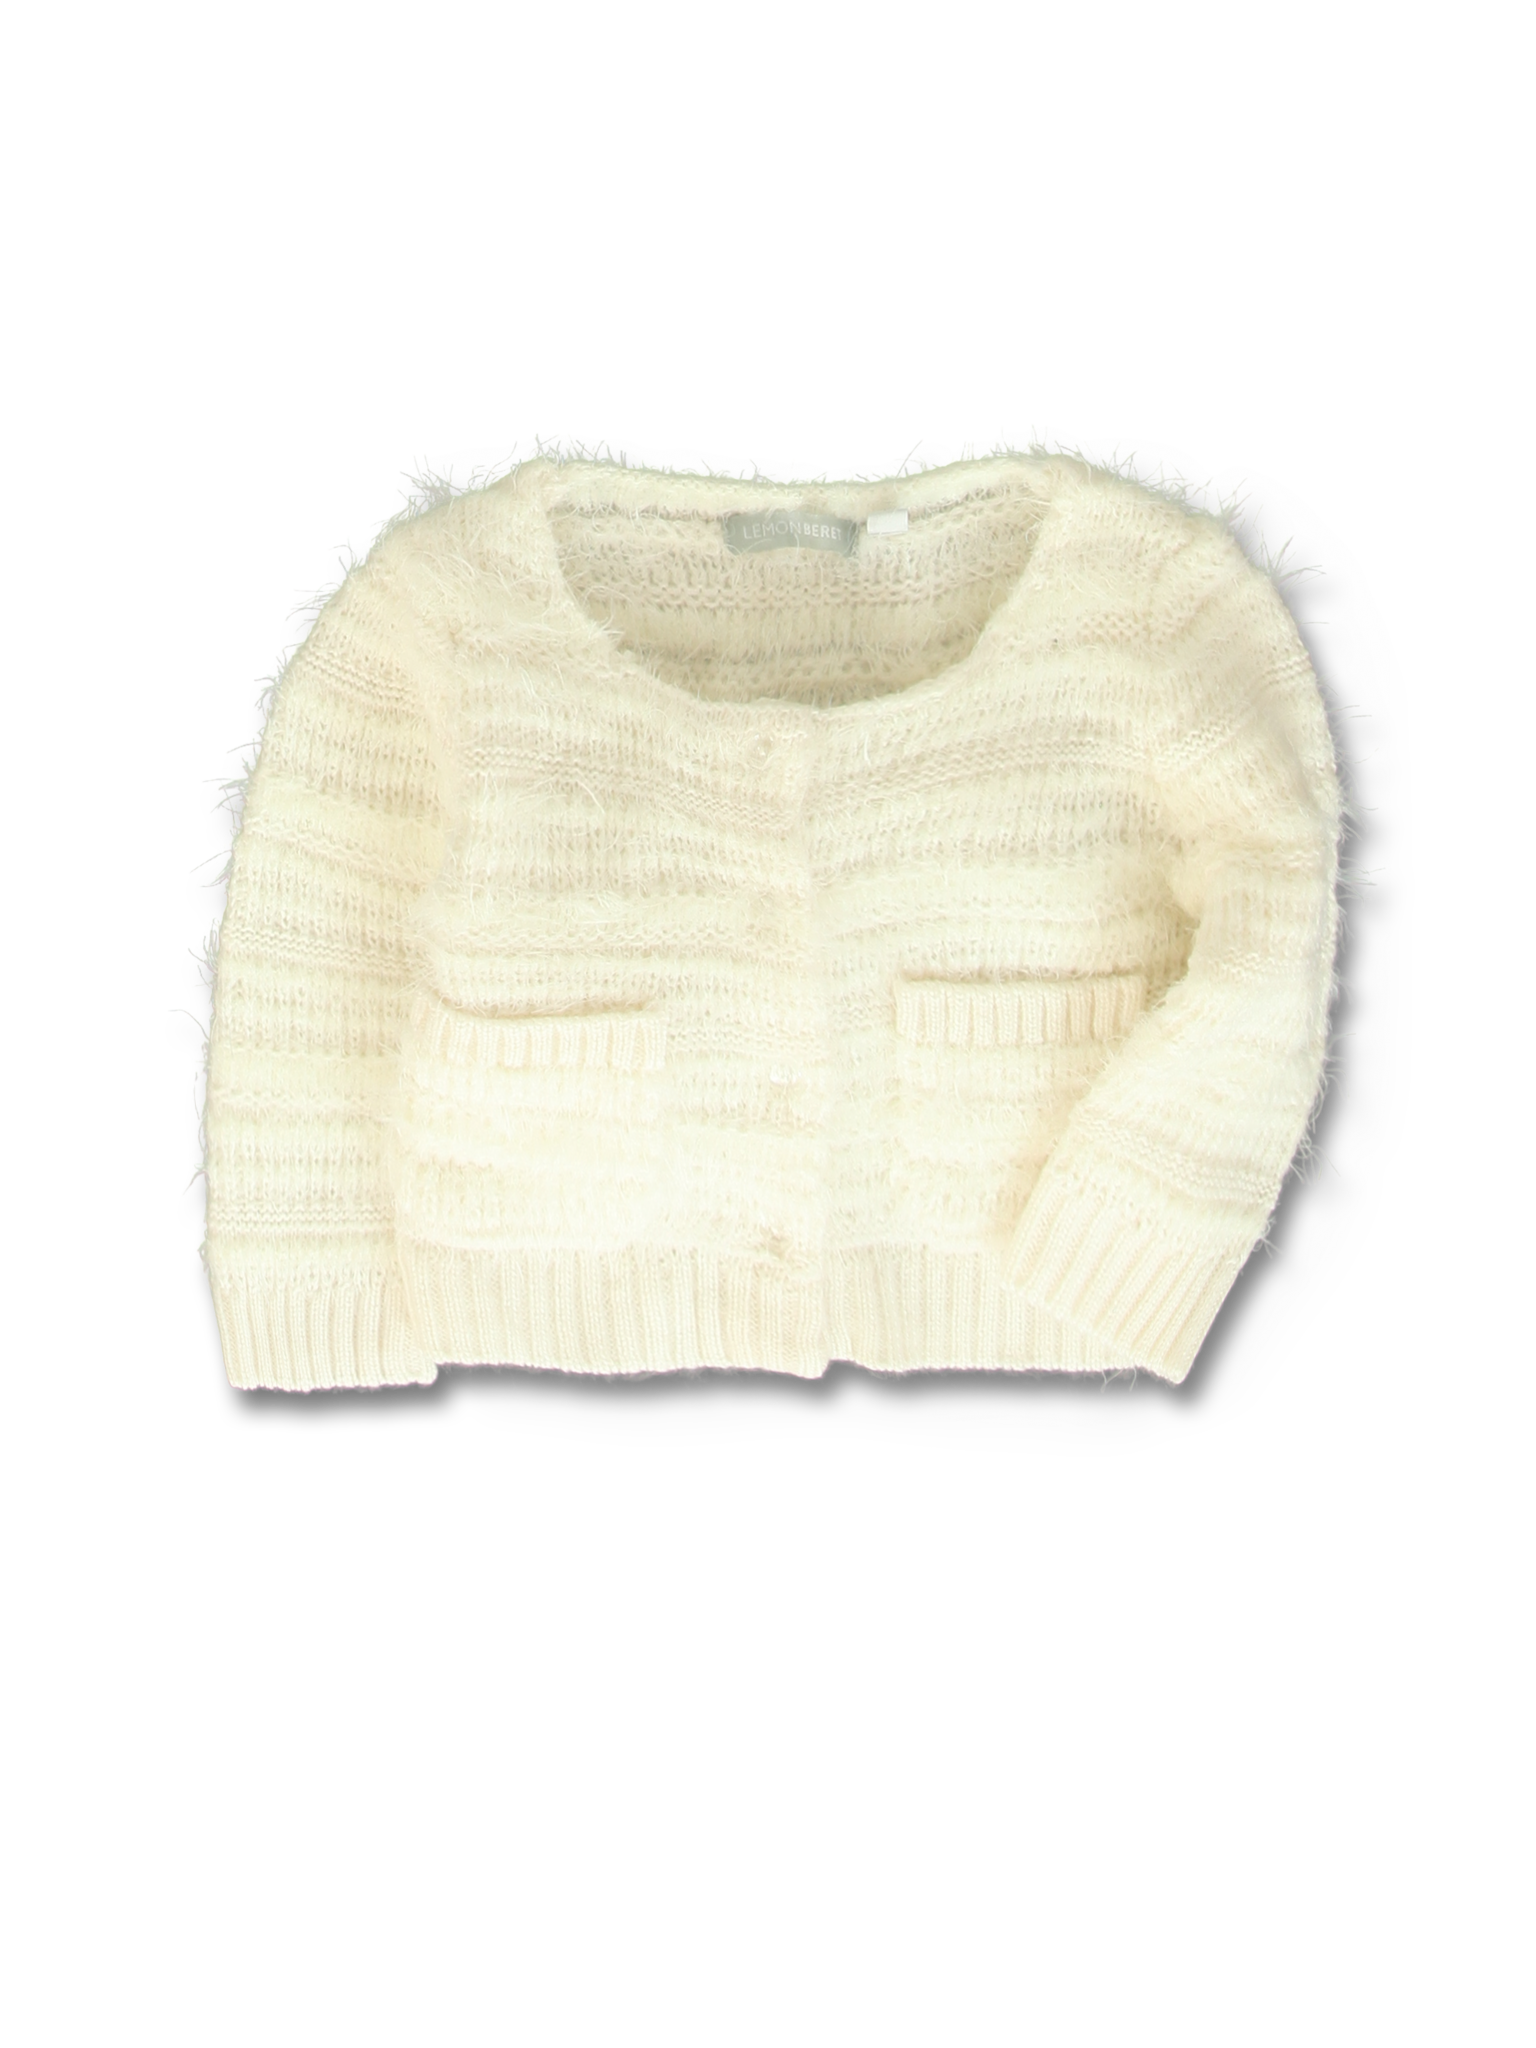 All Brands | Winterproducts Baby | Cardigan Knitwear | 12 pcs/box